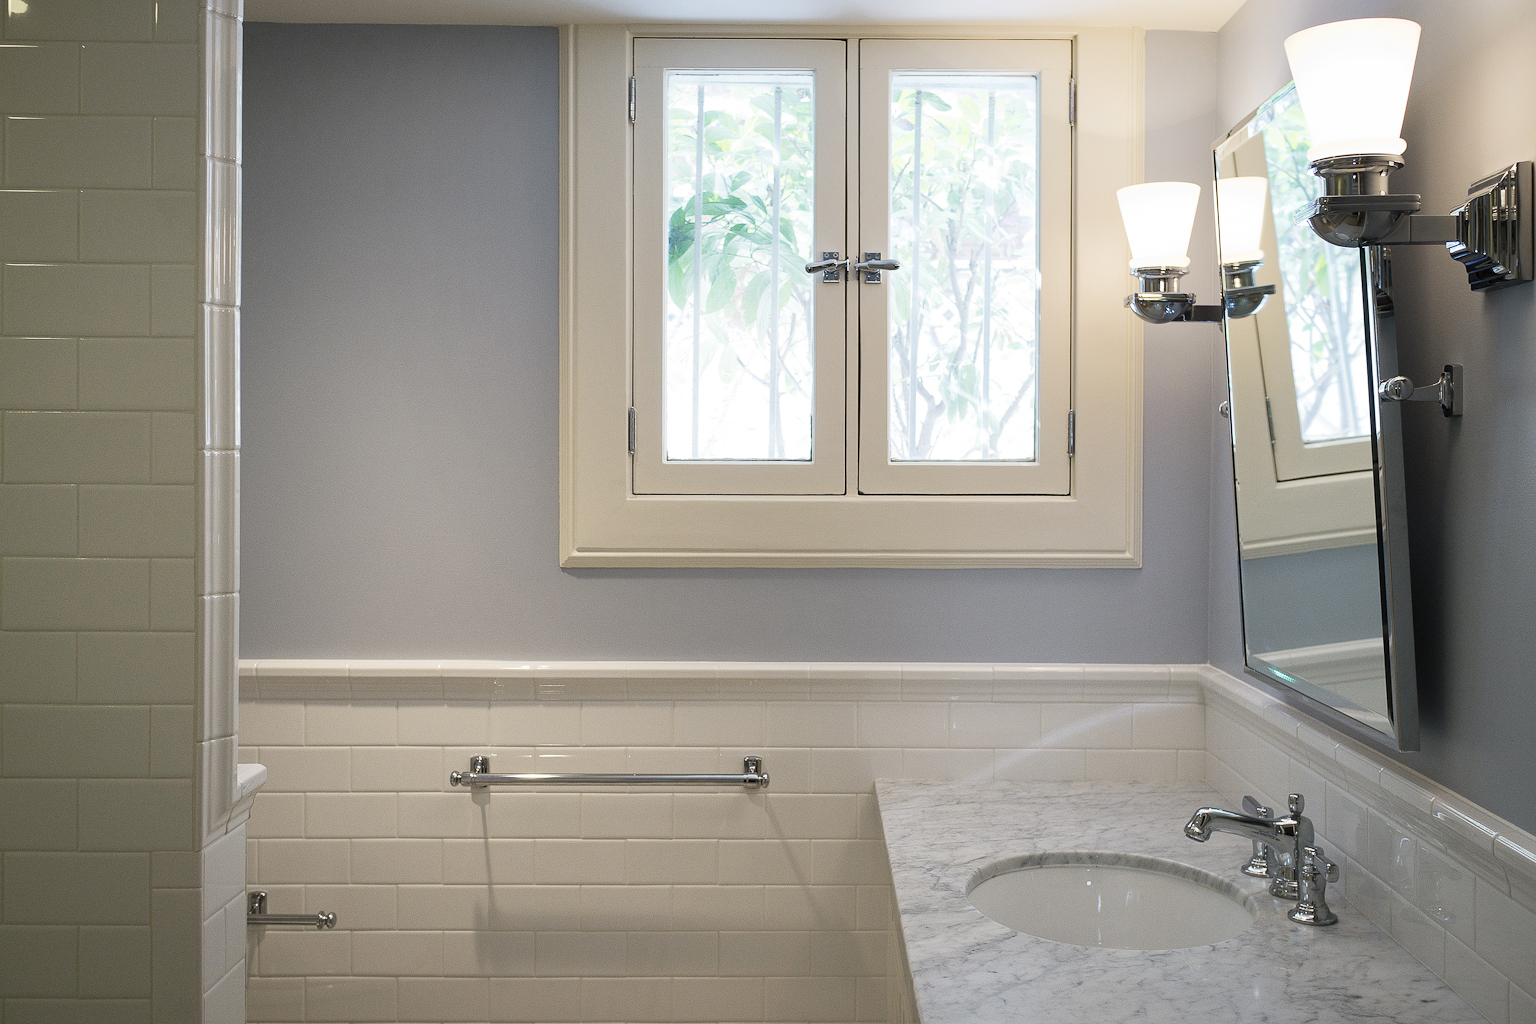 Tuesday trend benjamin moore 2014 color trends a cameo life for Bathroom finishes trends